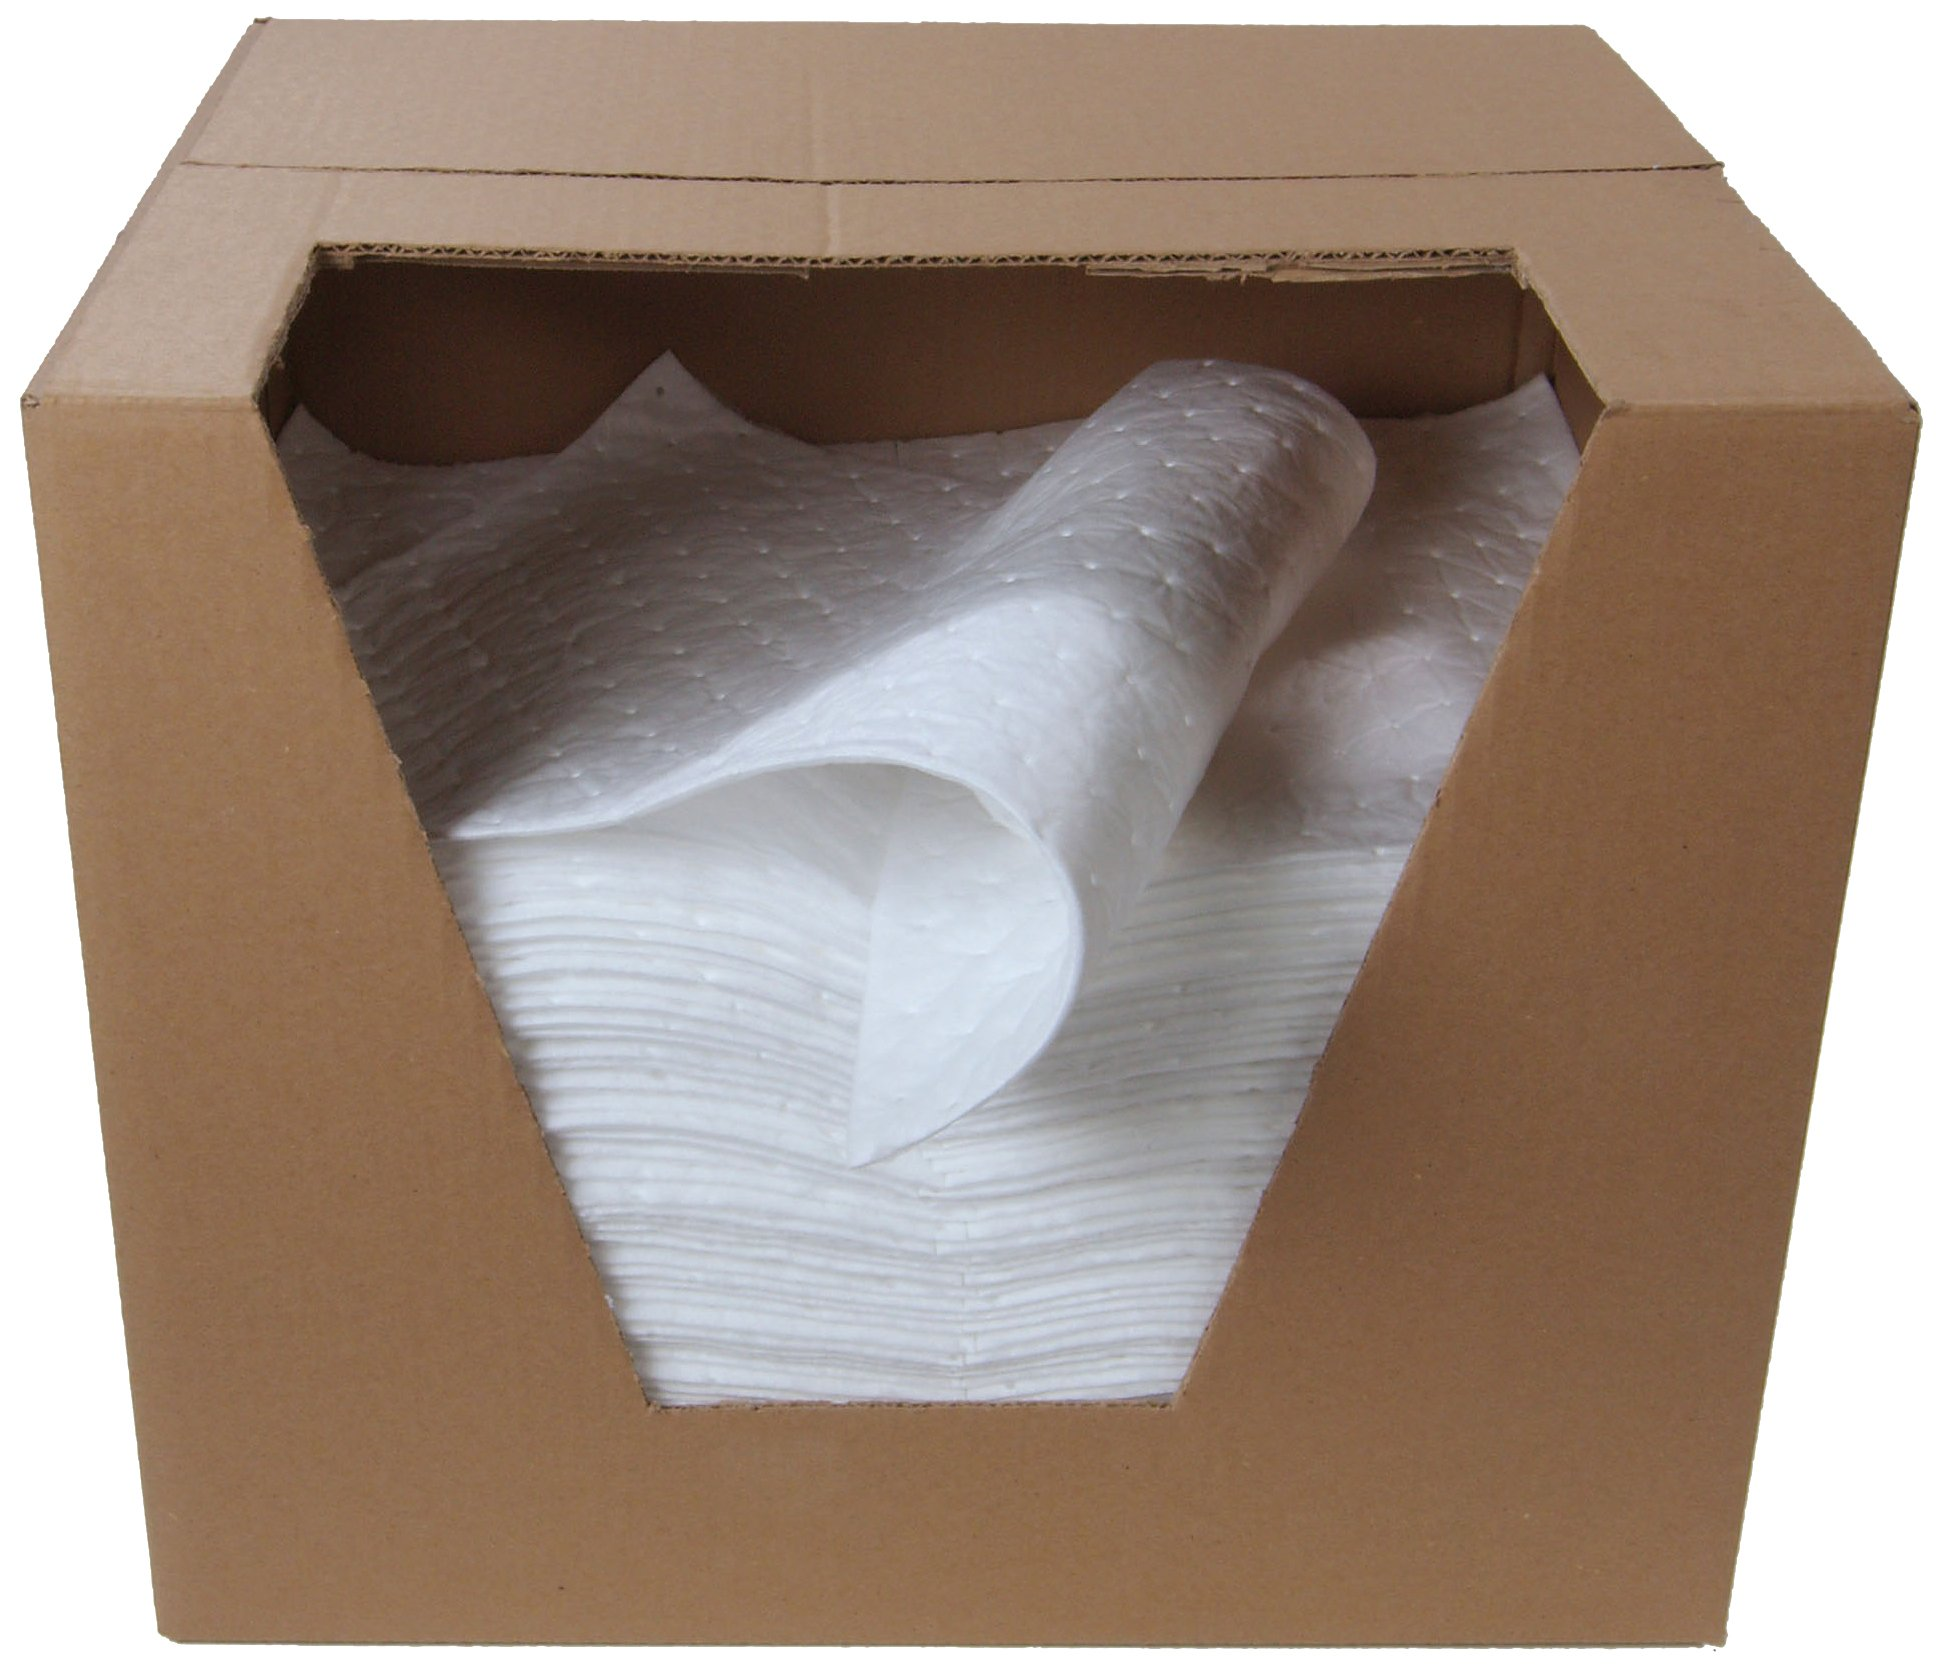 "ESP 2MBWPSL Polypropylene Medium Weight Meltblown Oil Only Absorbent Single Sided Laminated Pad, 18"" Length x 15"" Width, White (100 Per Bale)"